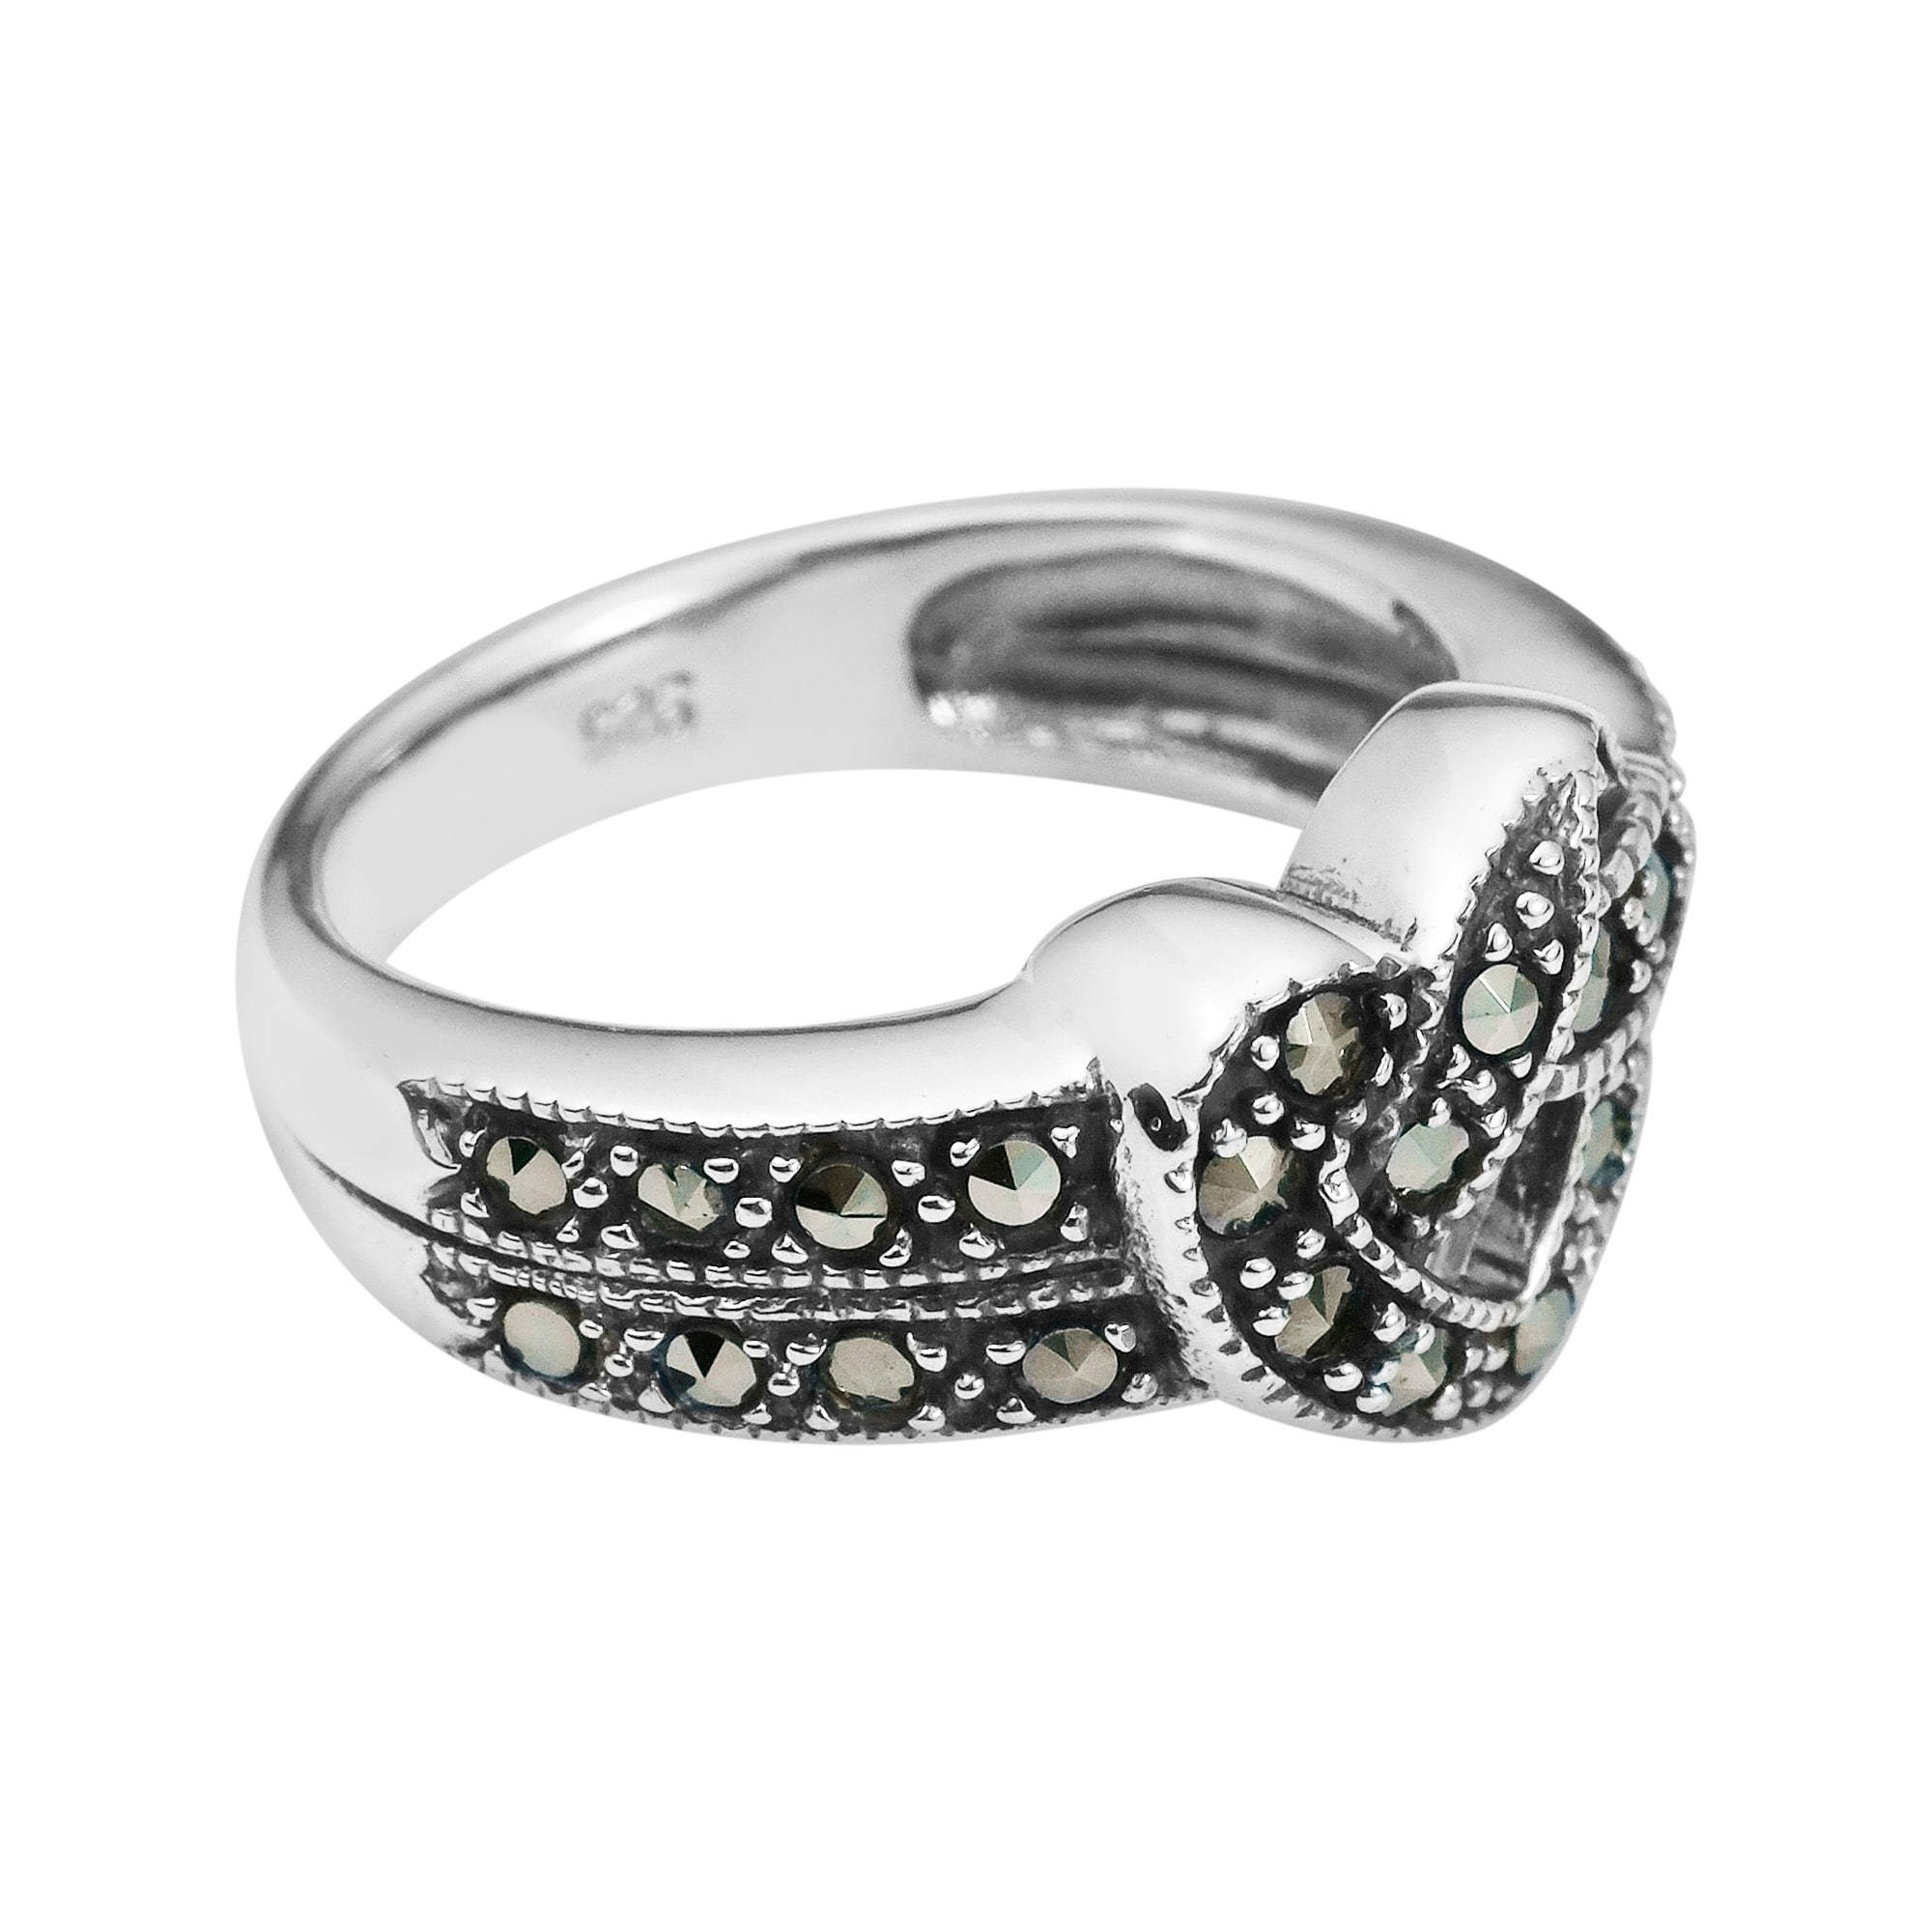 classic thailand details crafted flower silver style pr from flowers ring this sterling of design rings made products sweet plain yet marcasite features hawaiian aeravida triple